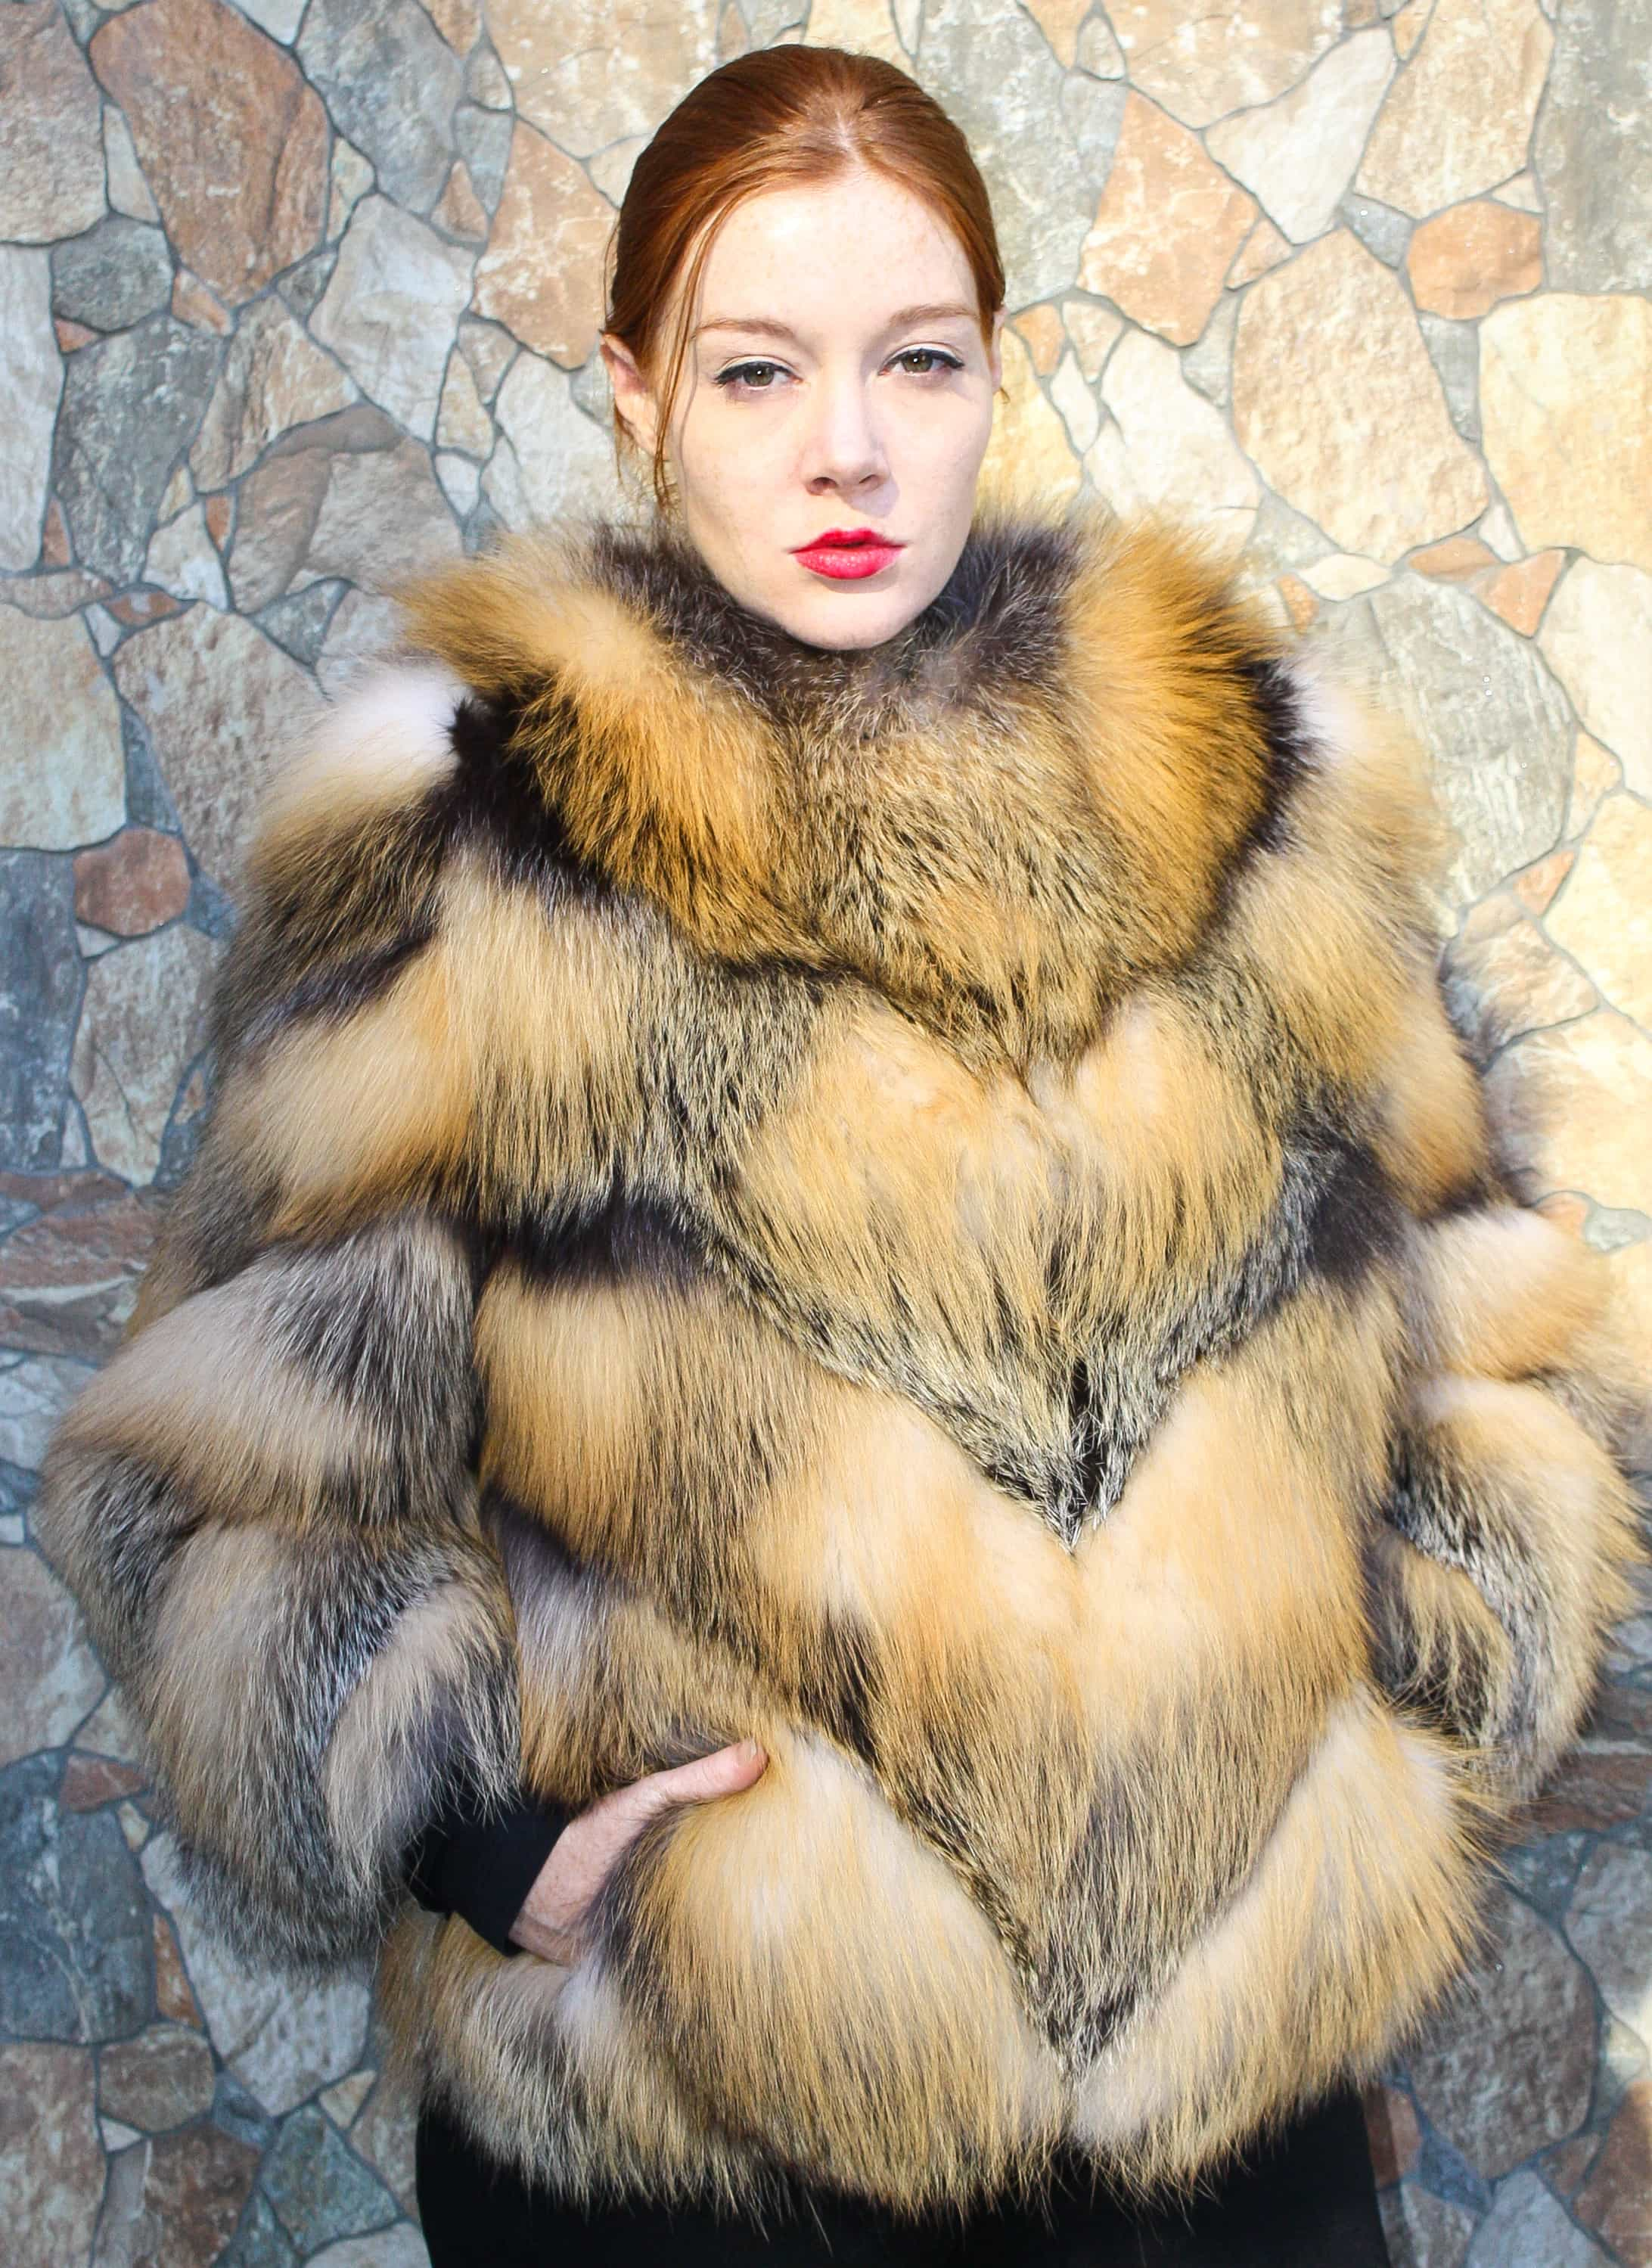 Animal Fur Coats: Much Warmer than Synthetic Fibers | MARC KAUFMAN ...